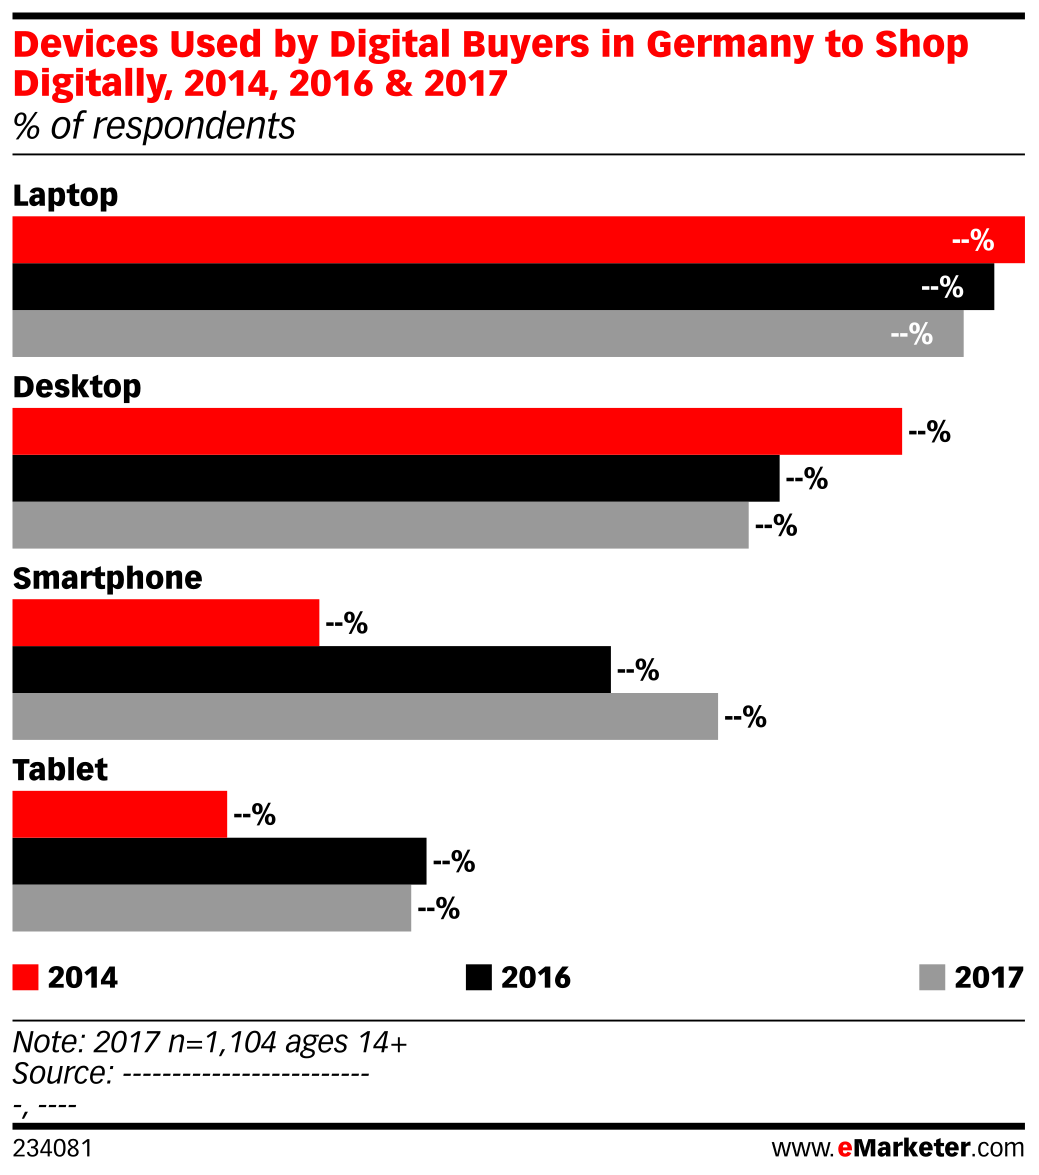 Devices Used by Digital Buyers in Germany to Shop Digitally, 2014, 2016 & 2017 (% of respondents)